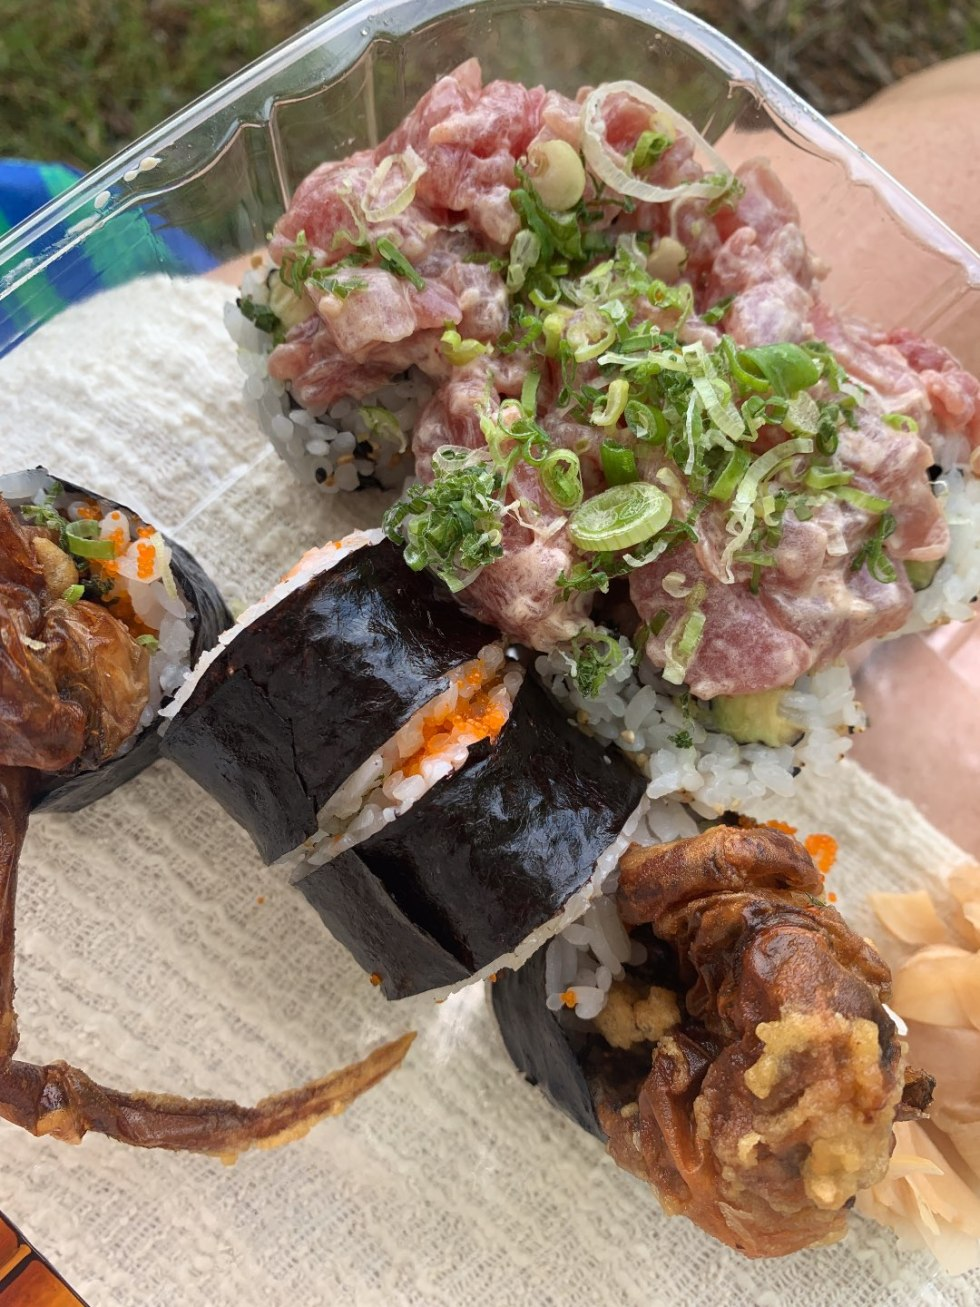 The Top 3 Places to Have a Picnic in Raleigh - I'm Fixin' To - @mbg0112 | Picnic in Raleigh by popular North Carolina blog, I'm Fixin' To: image of sushi from Waraji.